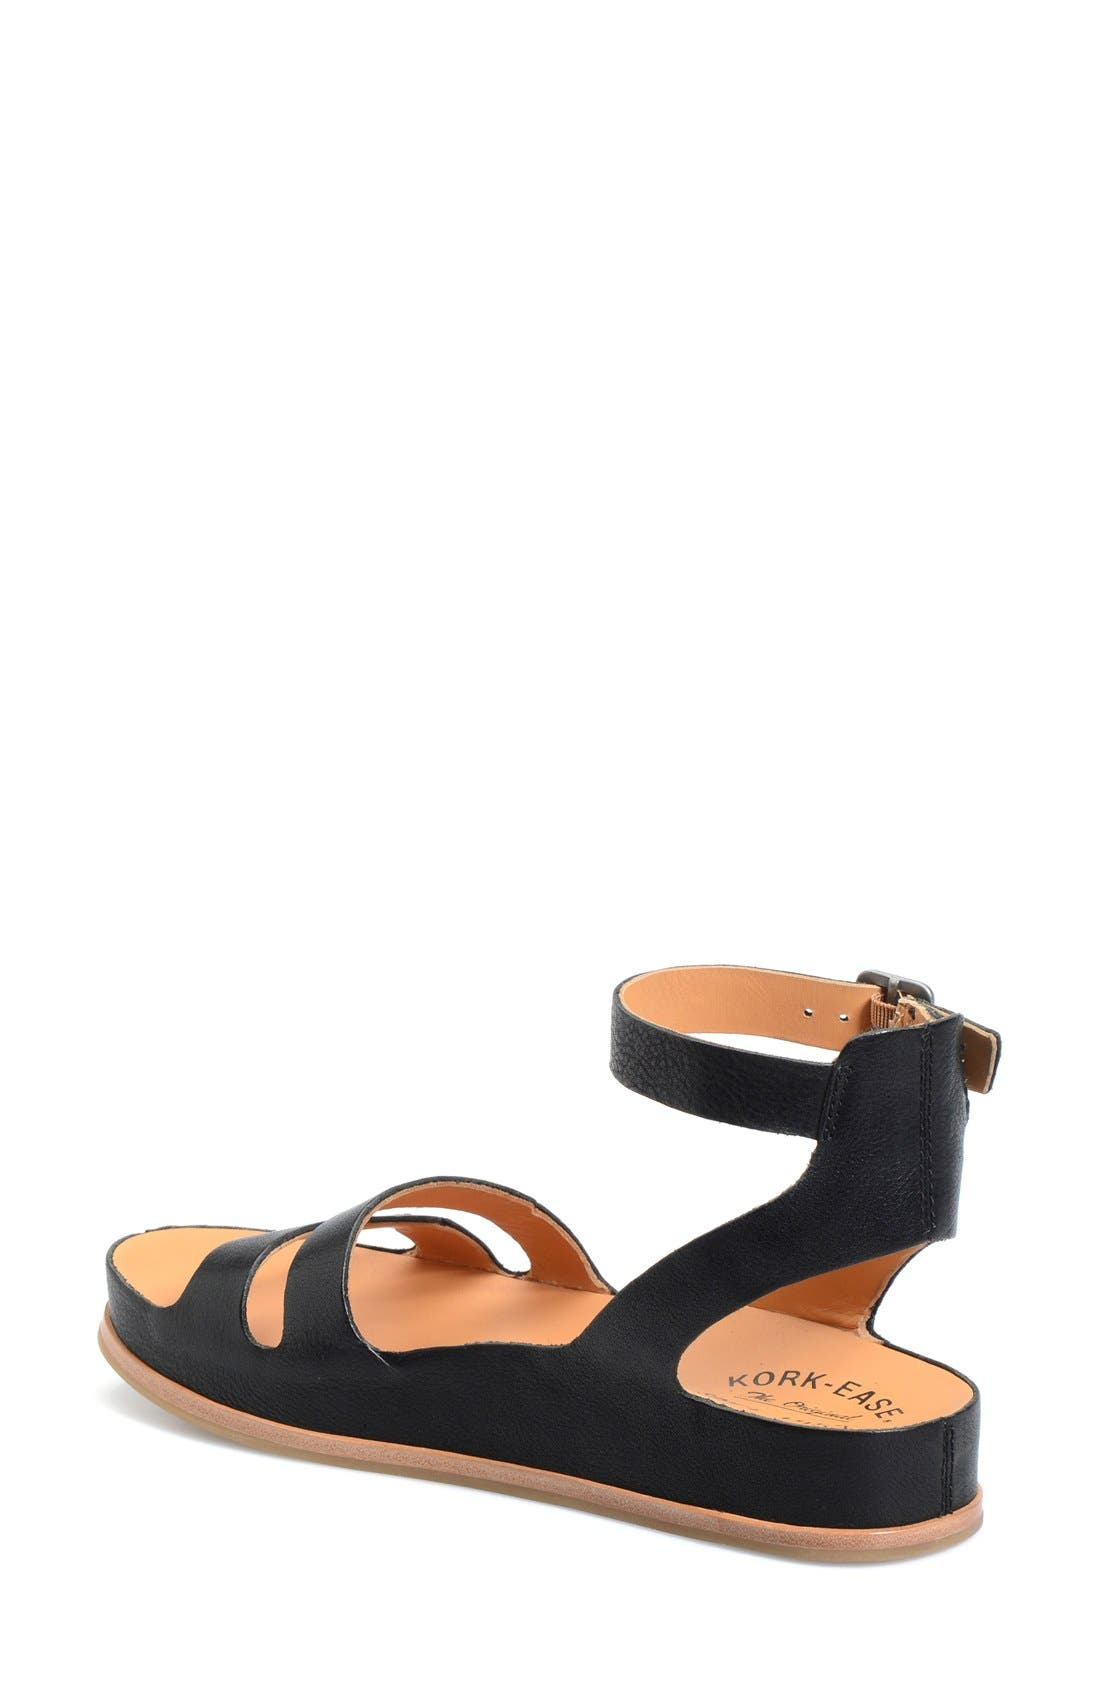 'Audrina' Ankle Strap Sandal,                             Alternate thumbnail 2, color,                             BLACK LEATHER